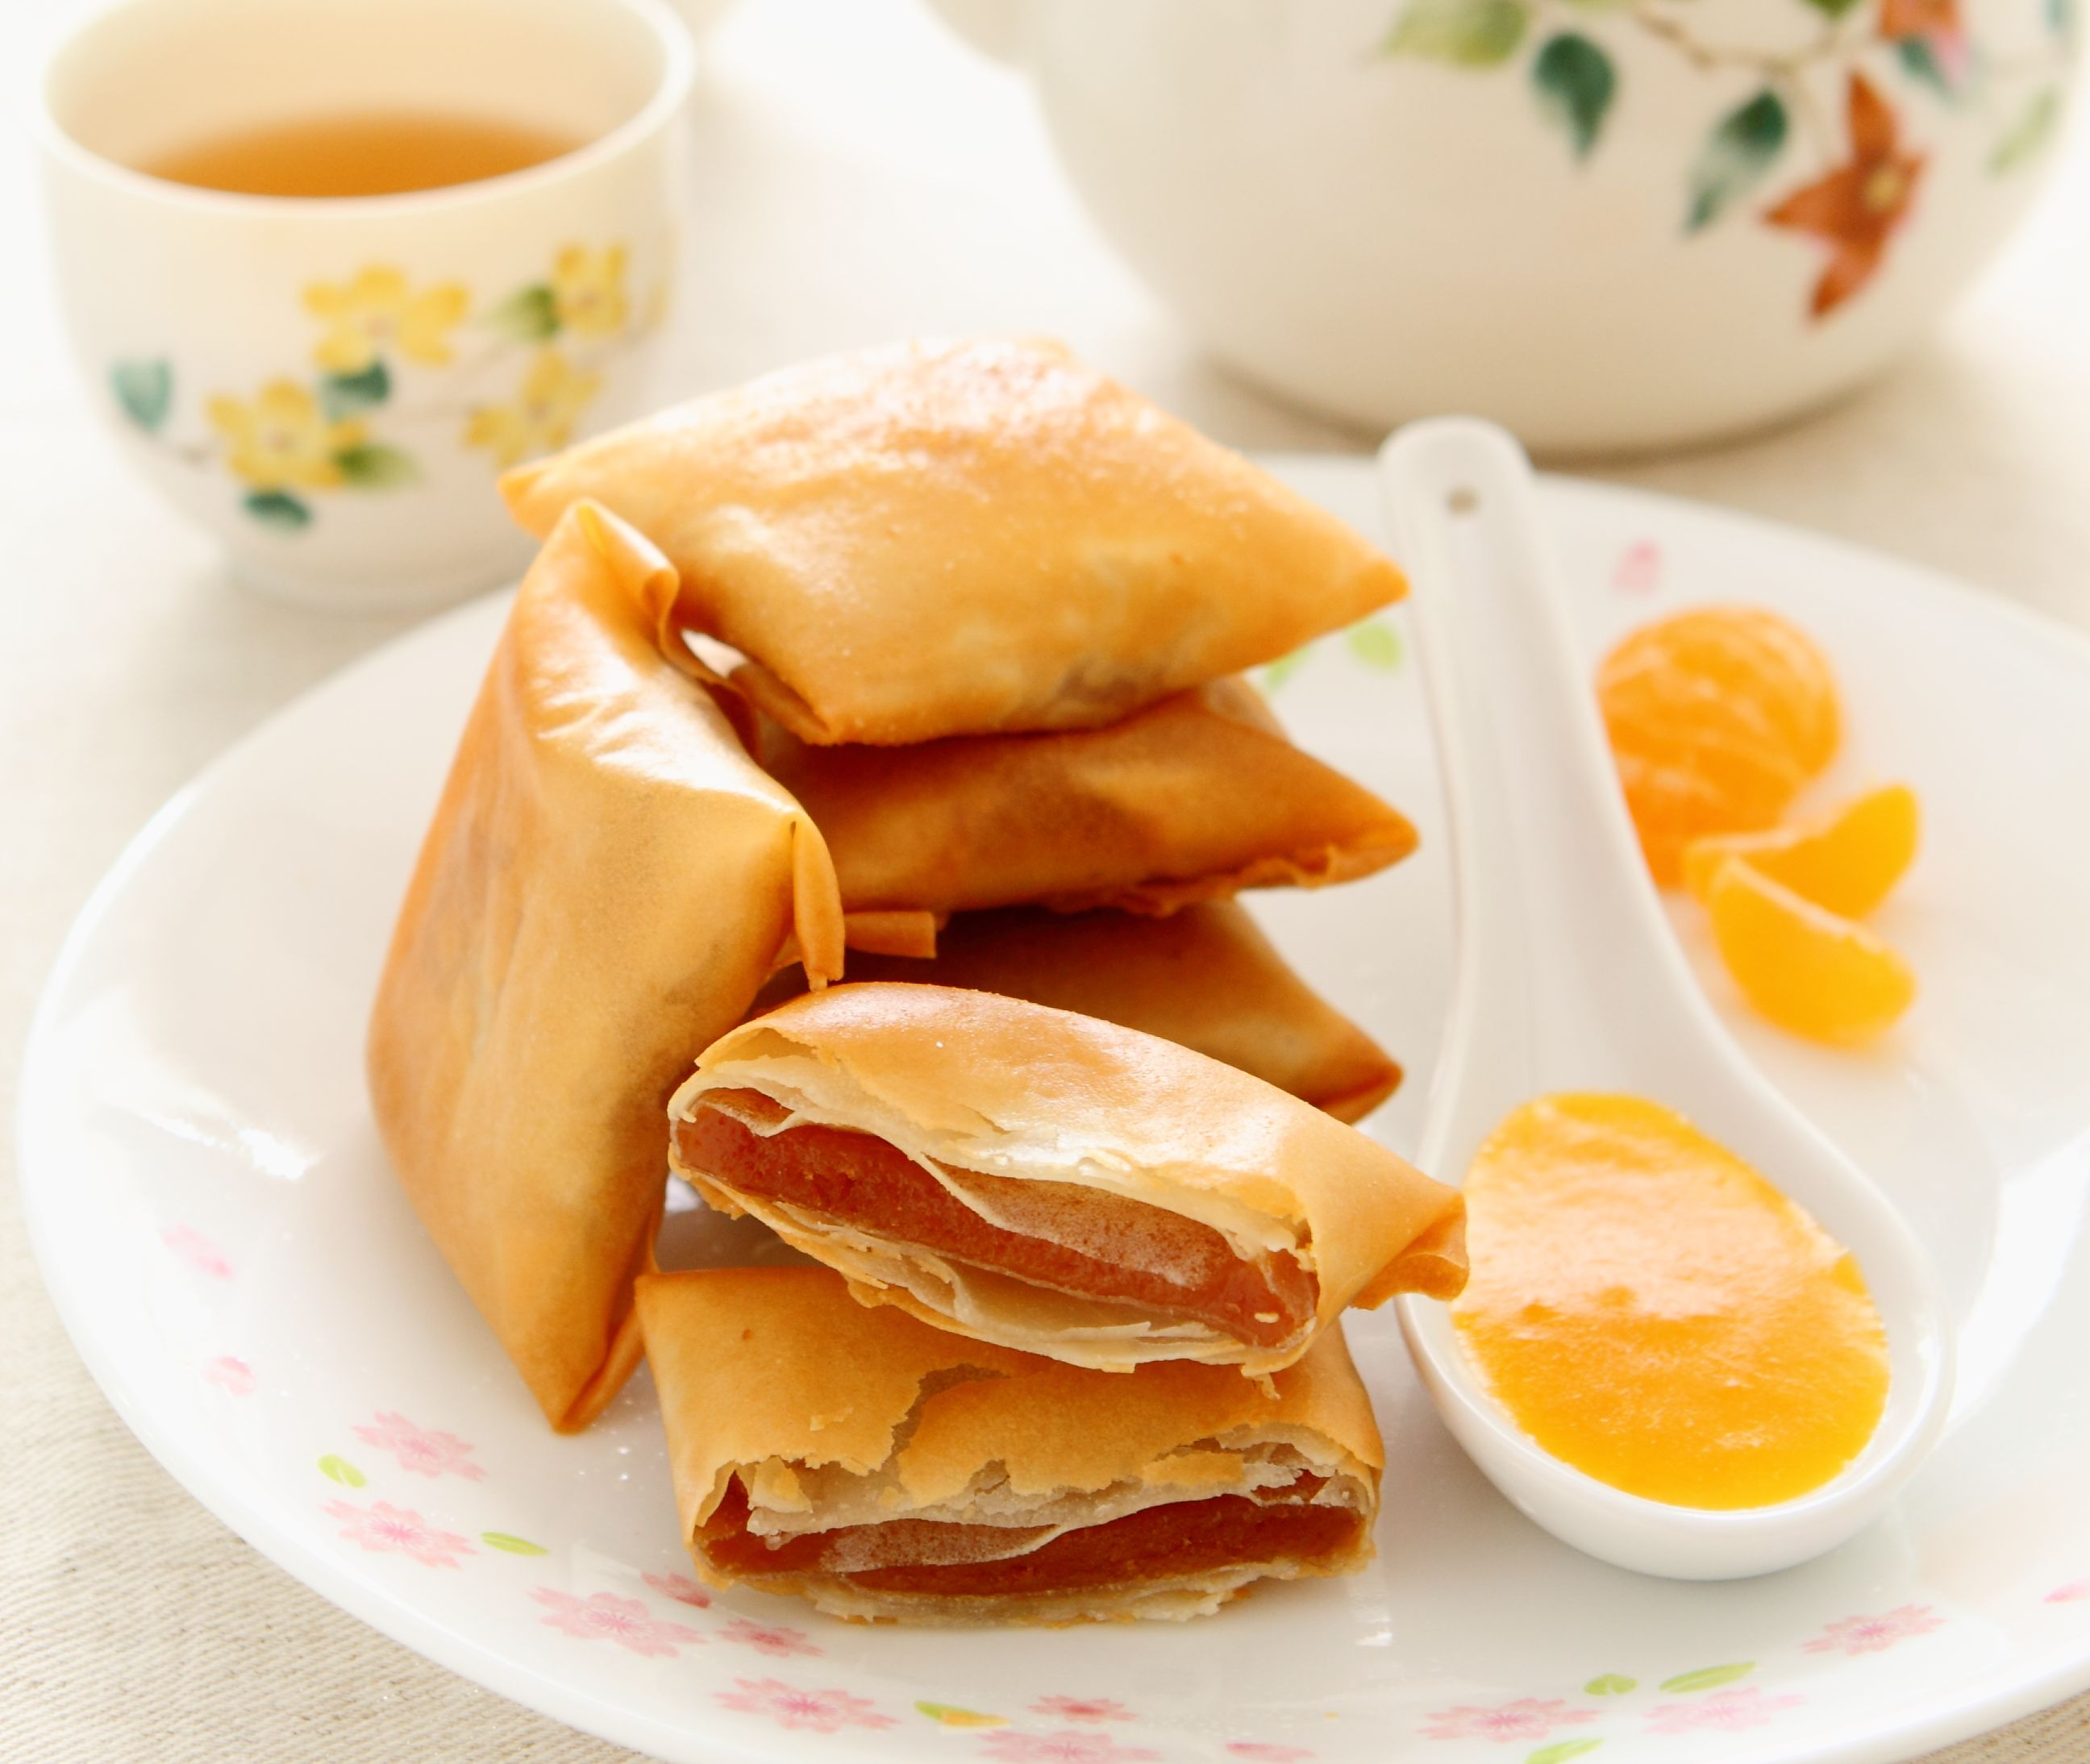 Kum Jiong Nin Koh (Deep-fried Glutinous Rice Cake Parcels with Mandarin Orange Coulis)